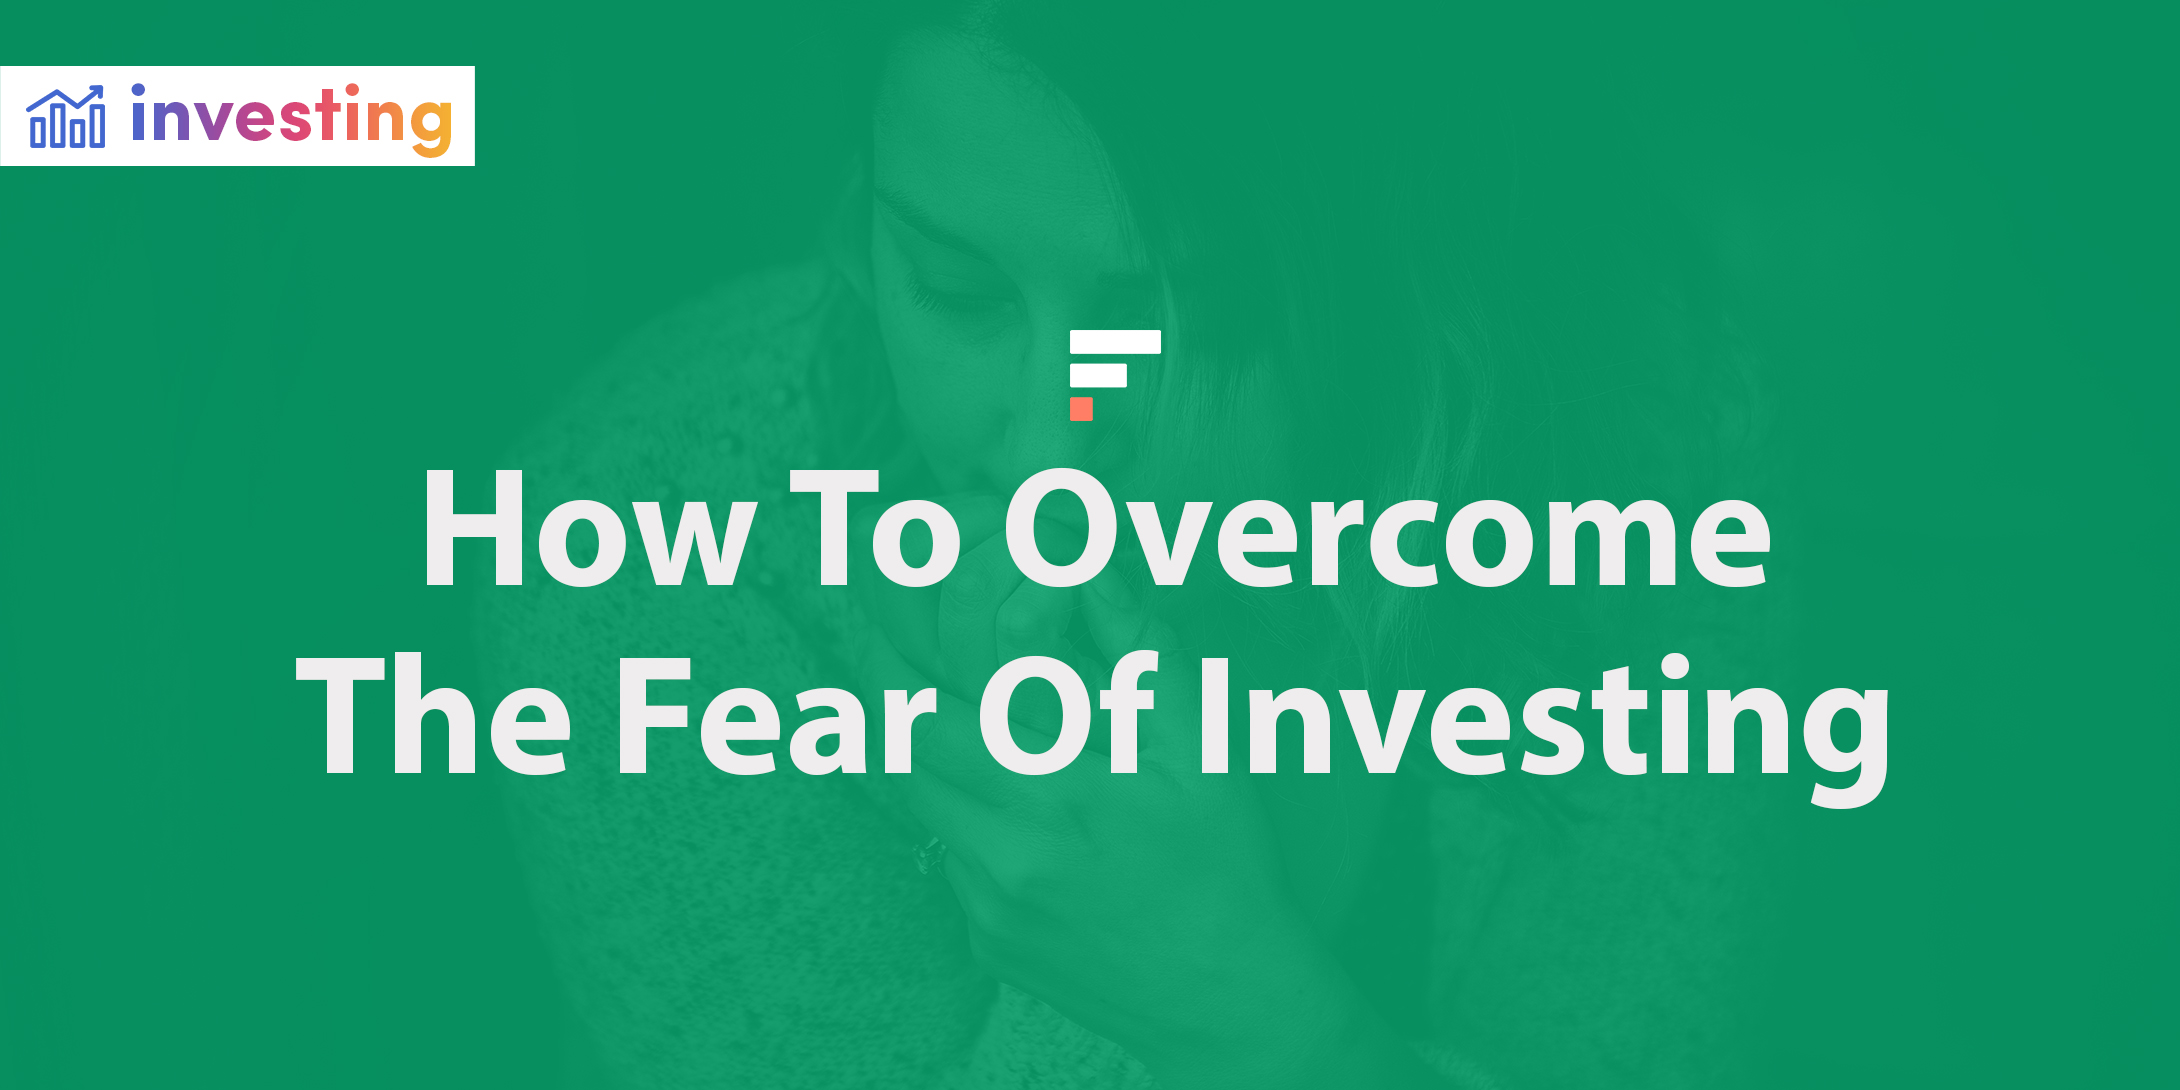 How to overcome the fear of investing